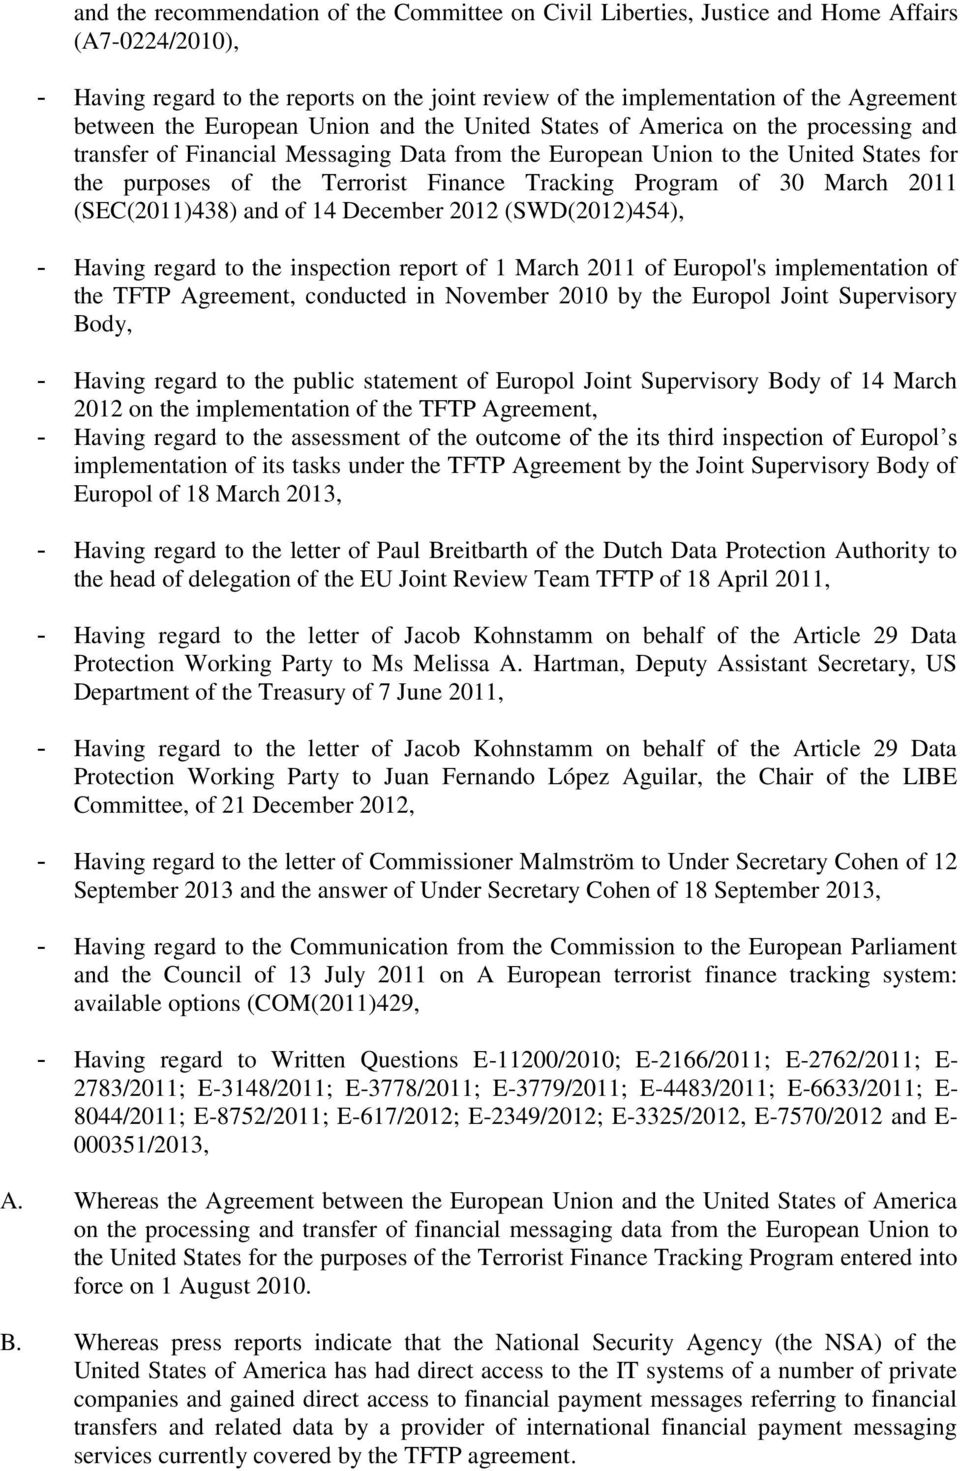 Tracking Program of 30 March 2011 (SEC(2011)438) and of 14 December 2012 (SWD(2012)454), - Having regard to the inspection report of 1 March 2011 of Europol's implementation of the TFTP Agreement,